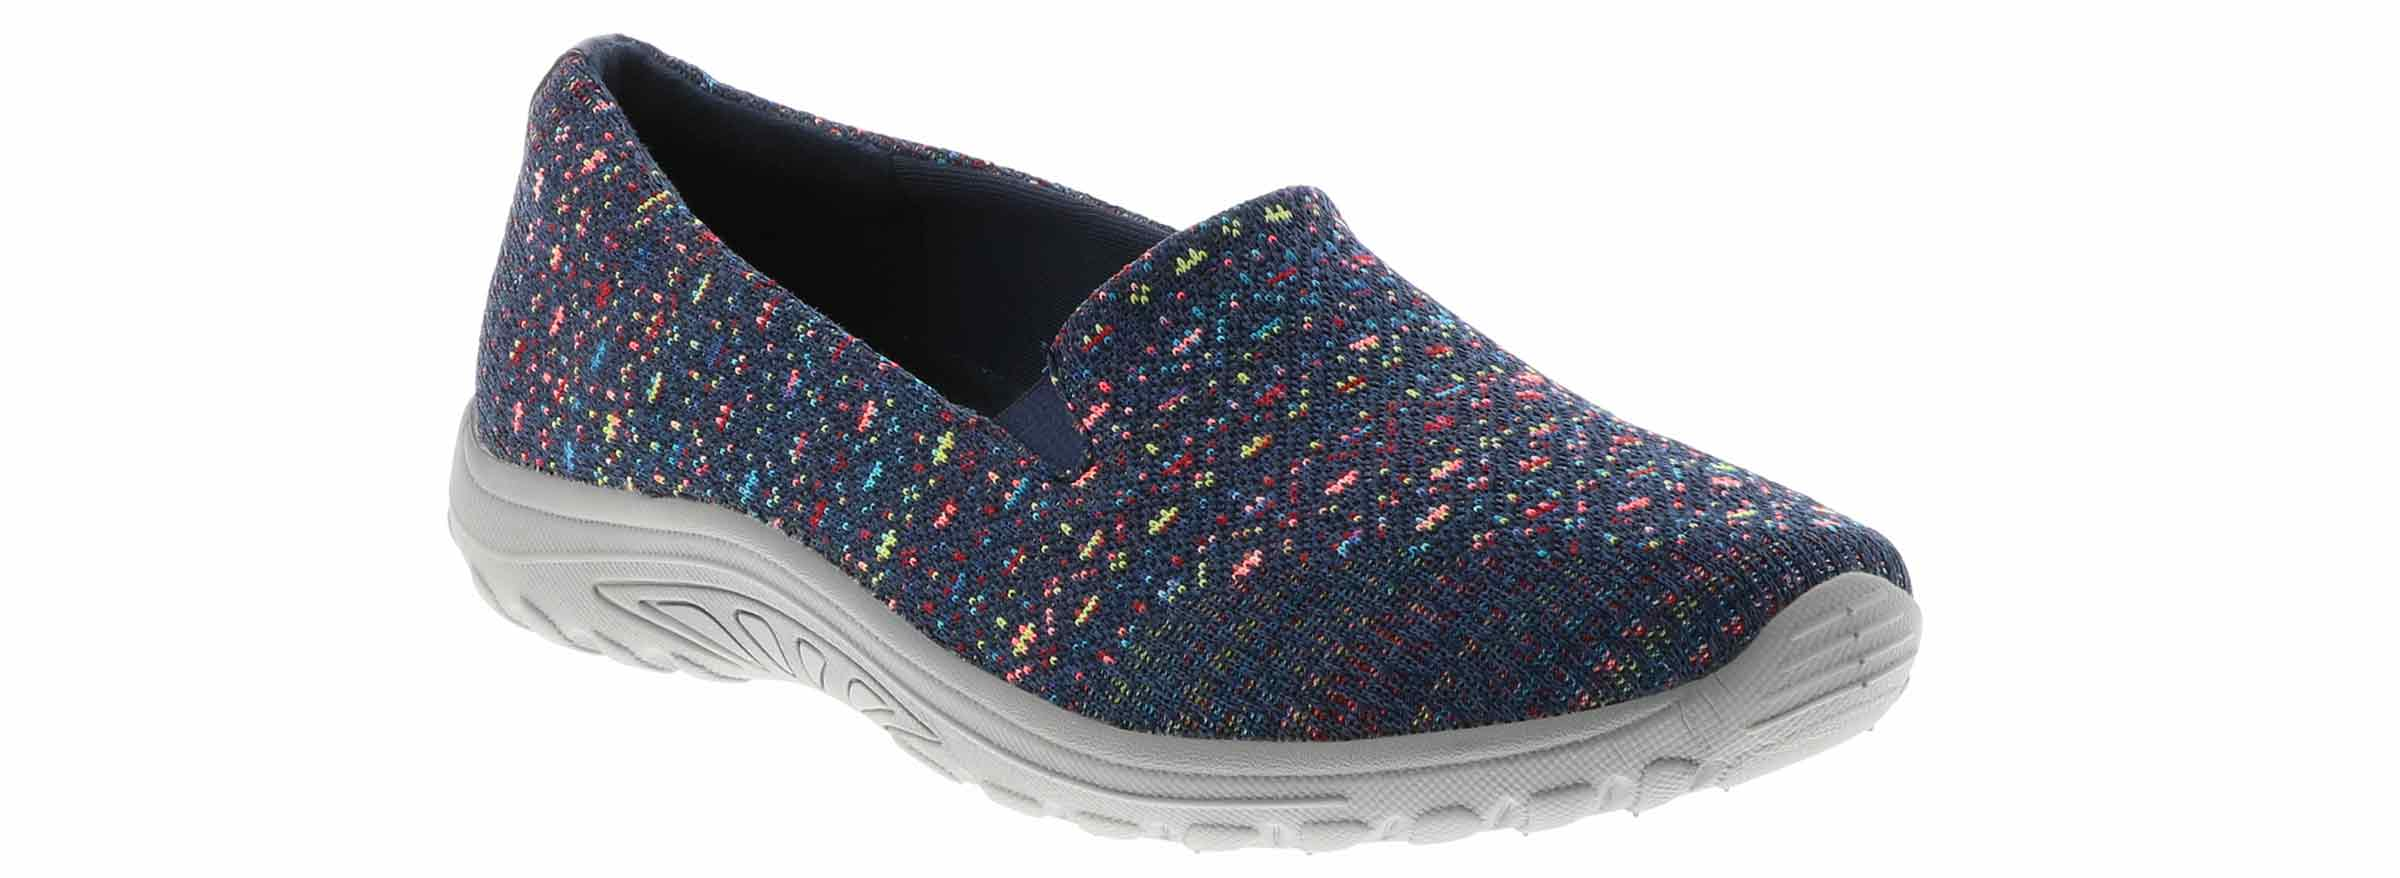 Women's Skechers Reggae Fest Wicker